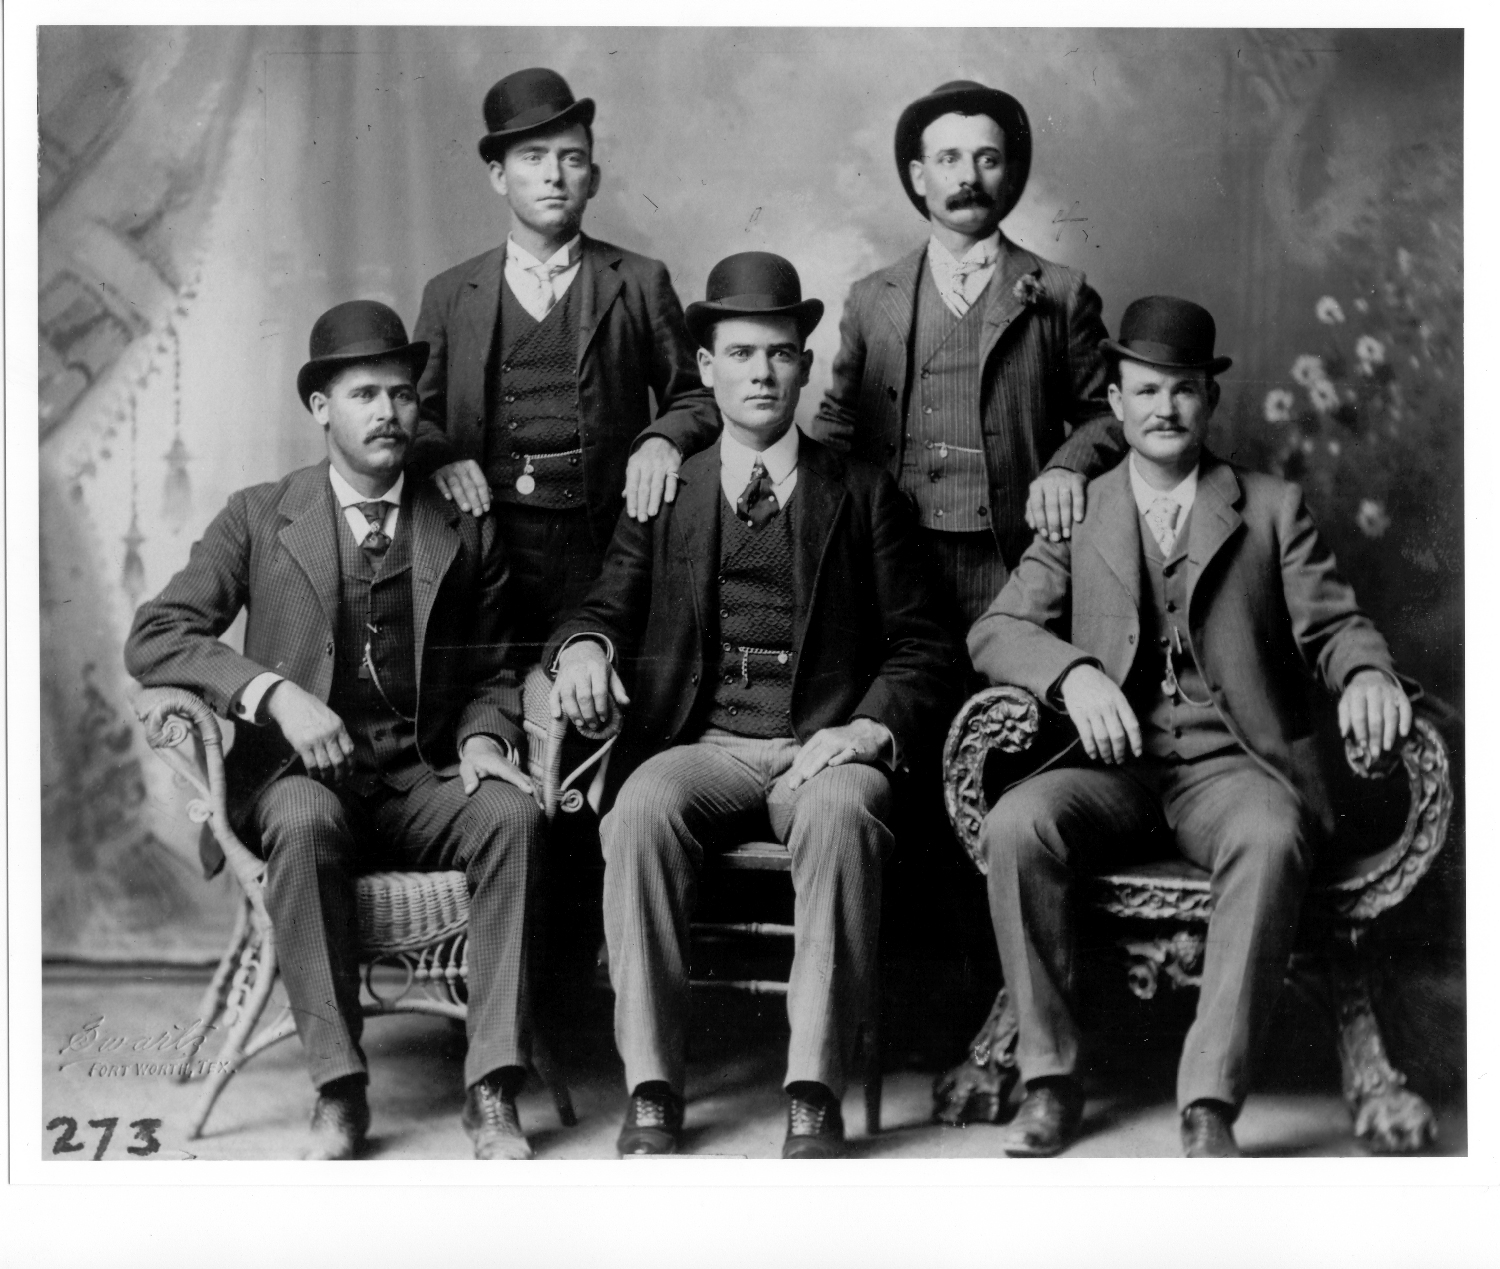 Butch_Cassidy_-_and_the_Wild-Bunch.jpg